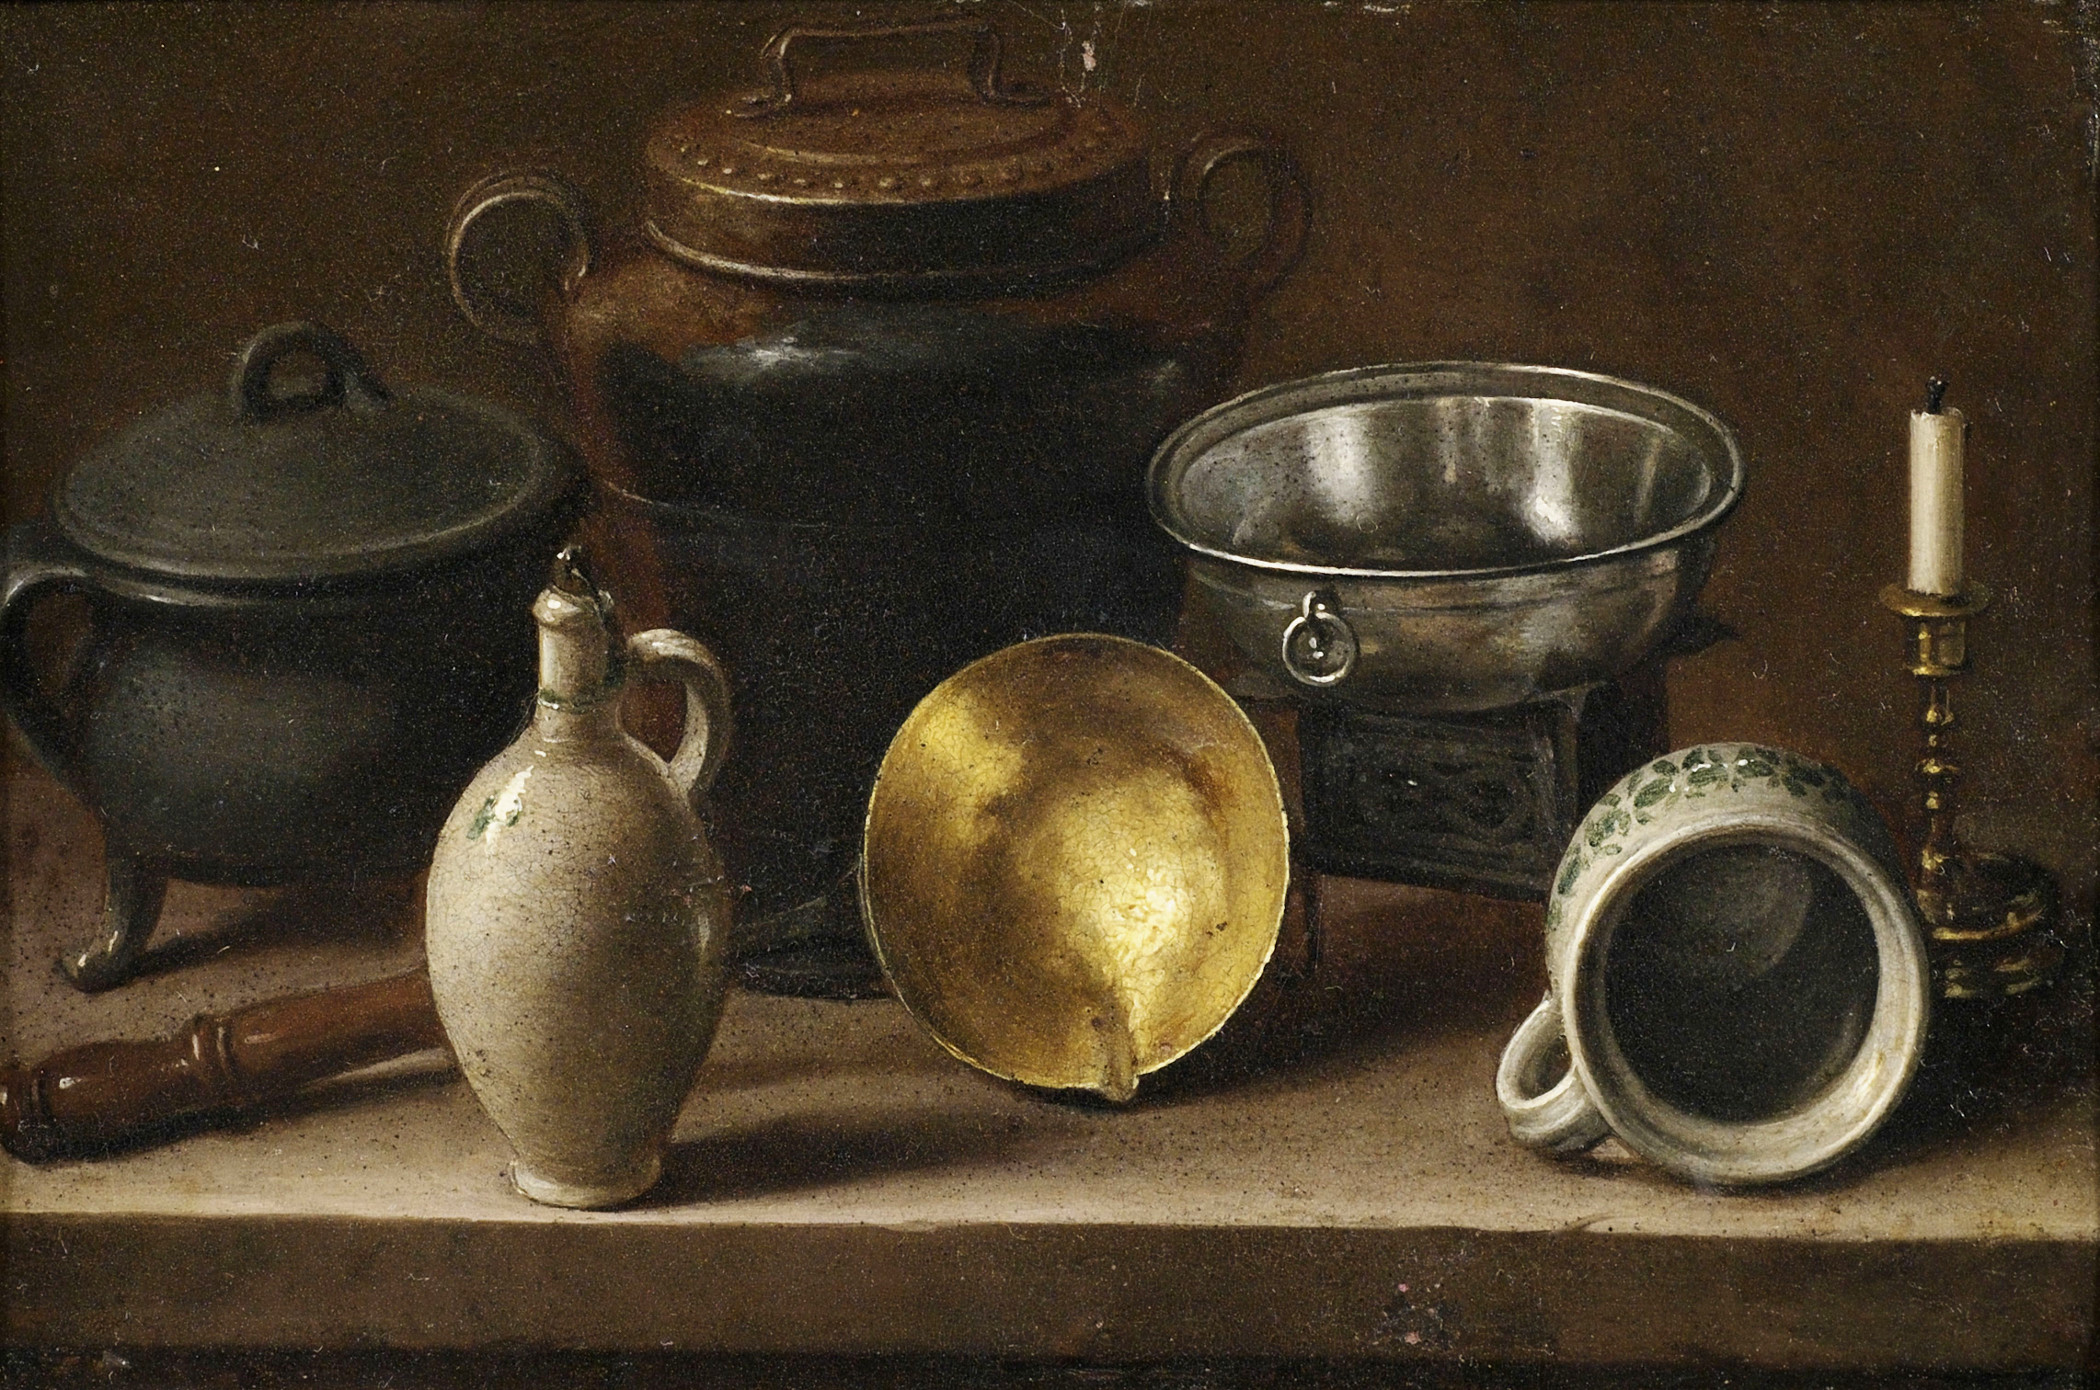 Still Life With Kitchen Utensils, Attributed To Martin. Copper Backsplash Tiles For Kitchen. Nice Kitchen Colors. Kitchen Colors Ideas Walls. Kitchens With Marble Countertops. Traditional Kitchen Backsplash. Mats For Kitchen Floor. Ikea Kitchen Countertops Quartz. Cheap Kitchen Backsplash